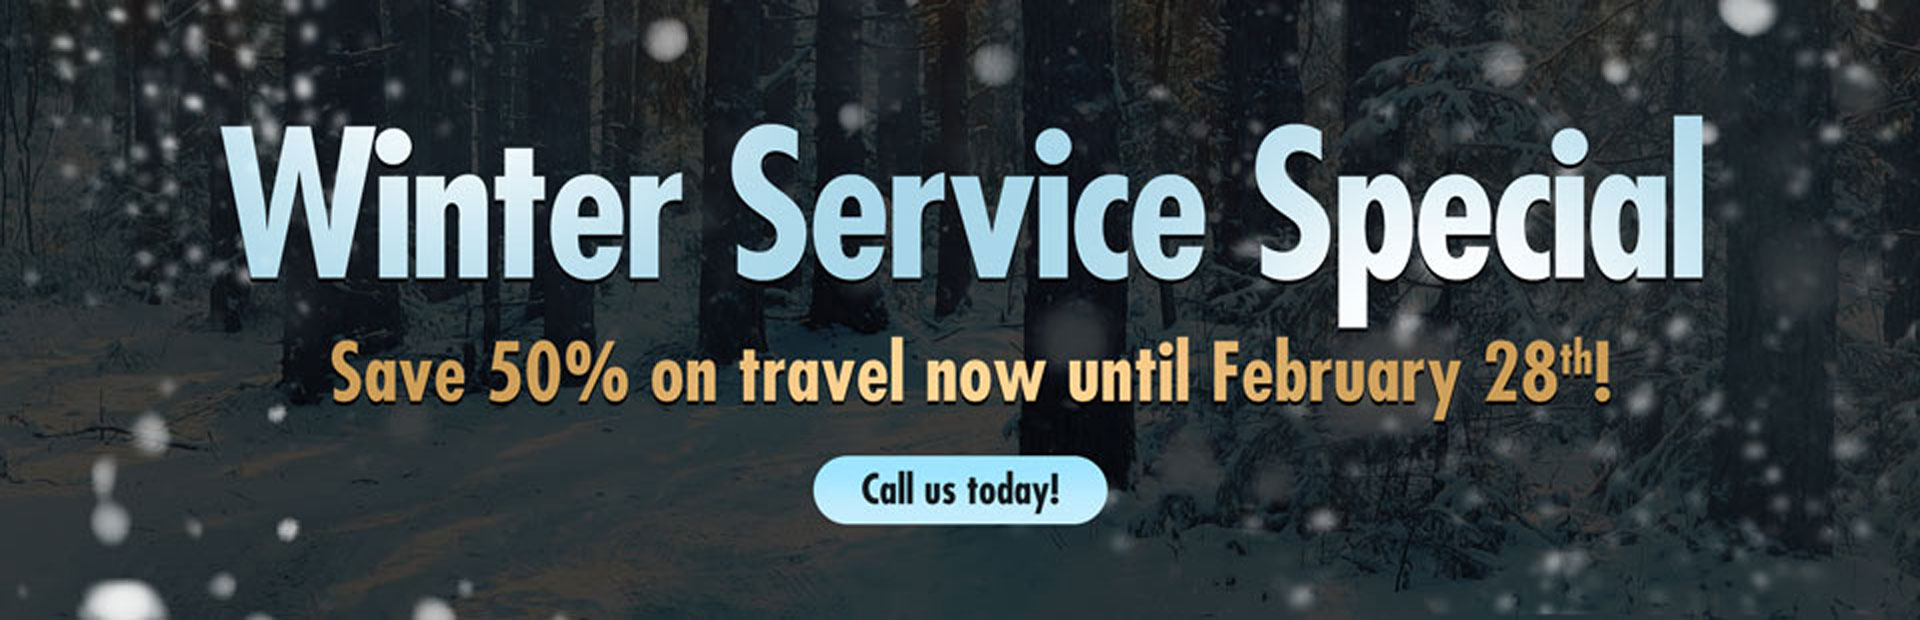 Winter Service Special: Save 50% on travel now until February 28th! Call 913-268-4288 today!